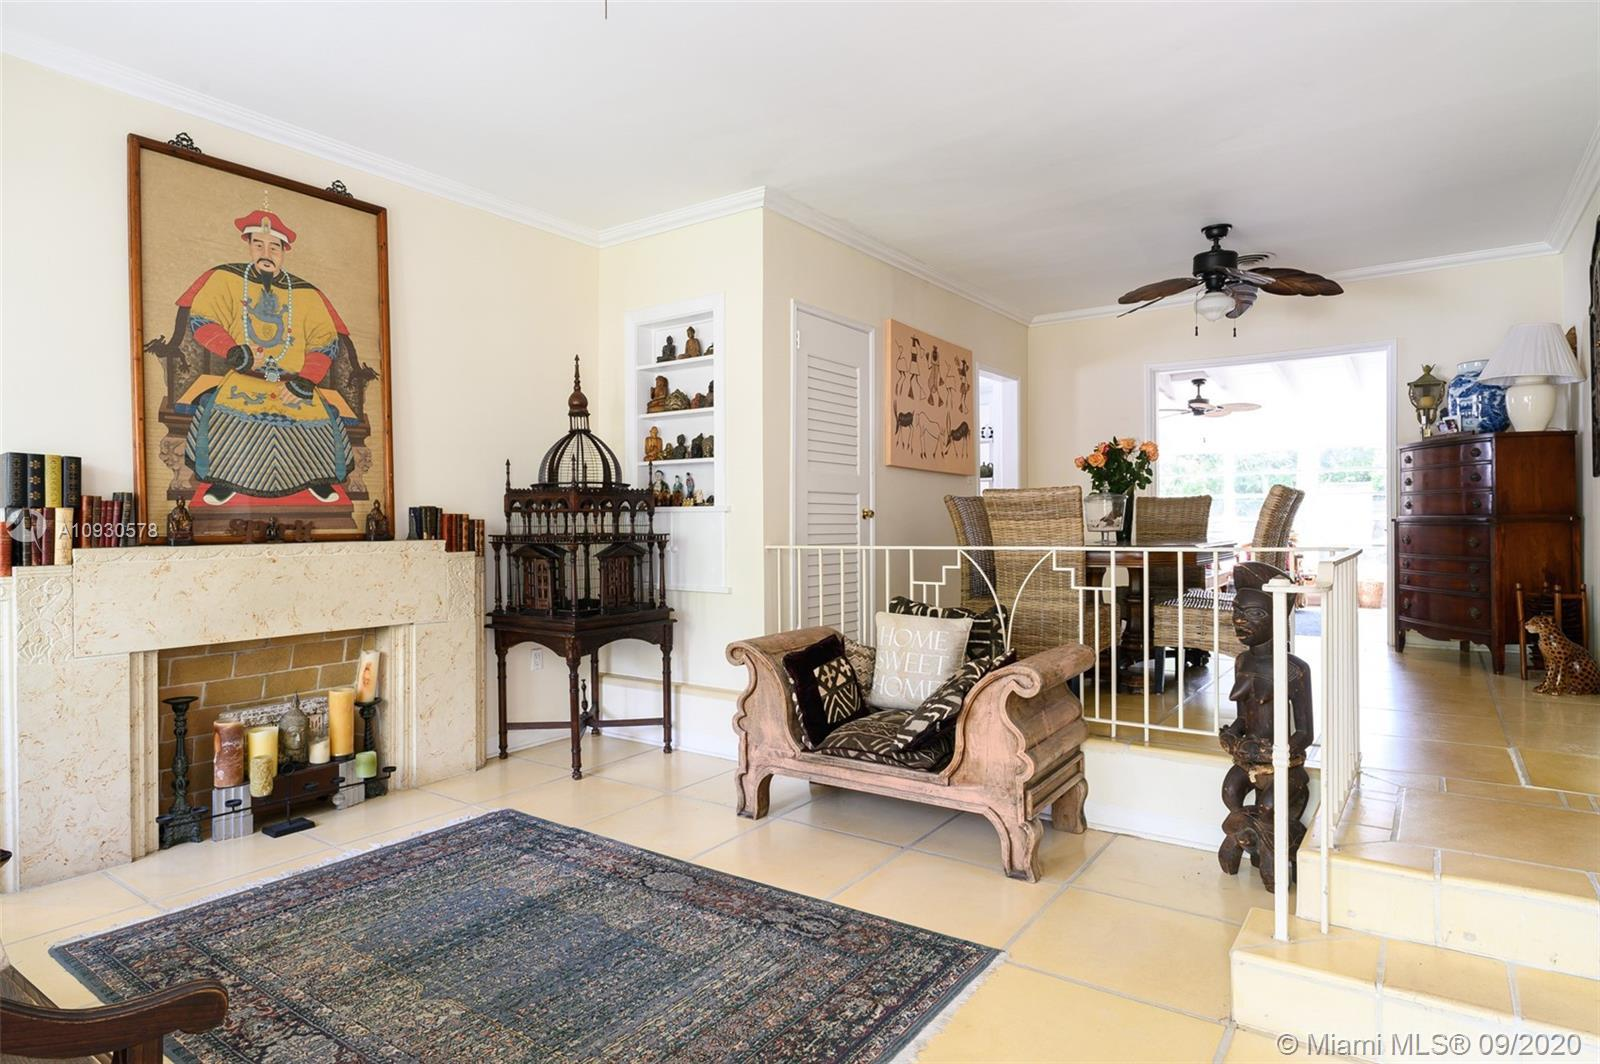 CHARMING HOME IN SURFSIDE- 3 BEDROOMS +1 OFFICE, 2 BATHROOMS. TIKKI IN THE GARDEN THAT GIVES AN ADDI